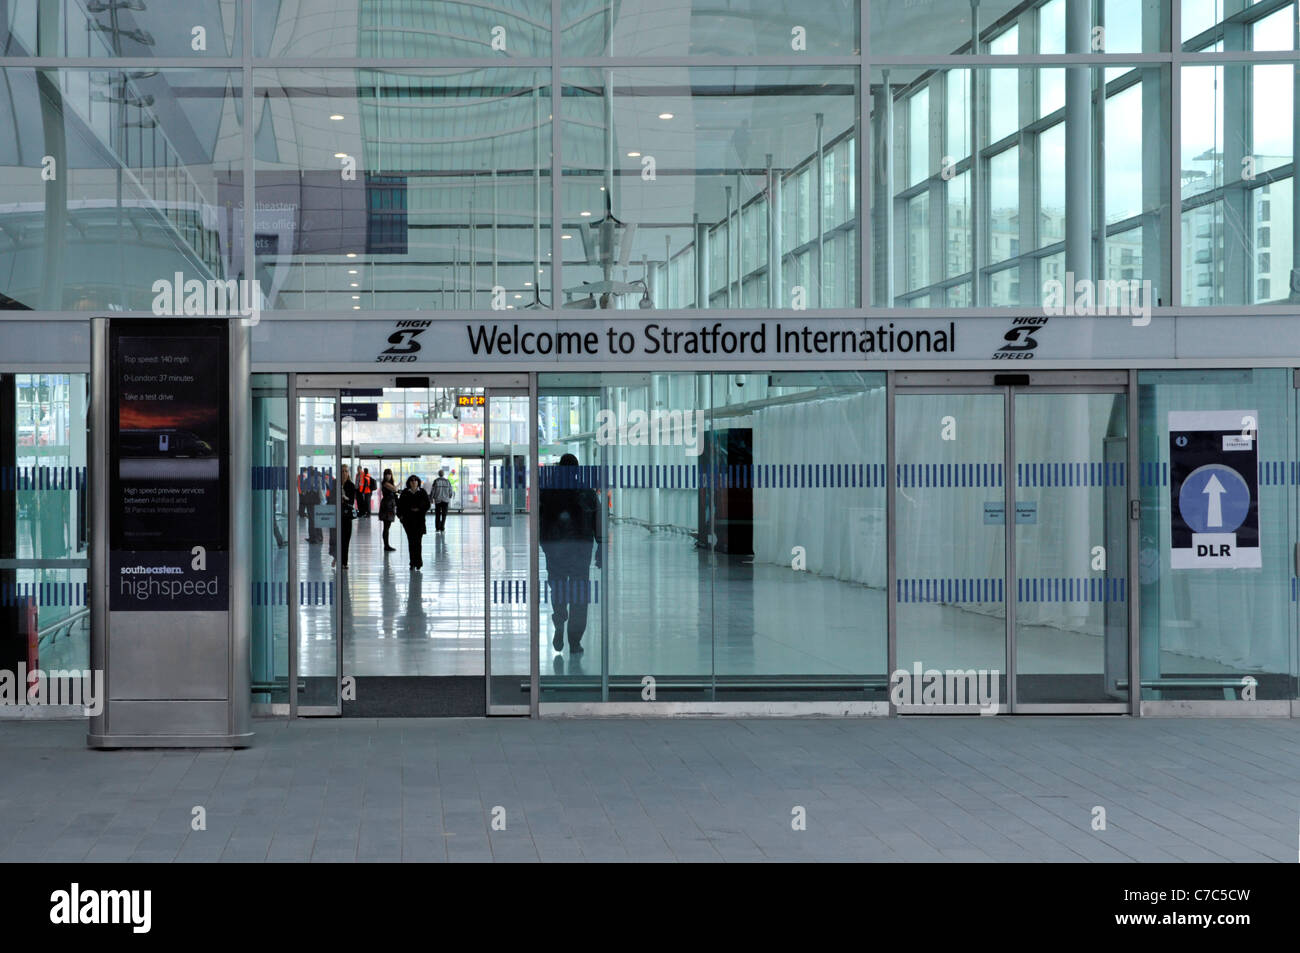 Stratford International train station for Southeastern high speed train & walk through link to DLR  effectively - Stock Image